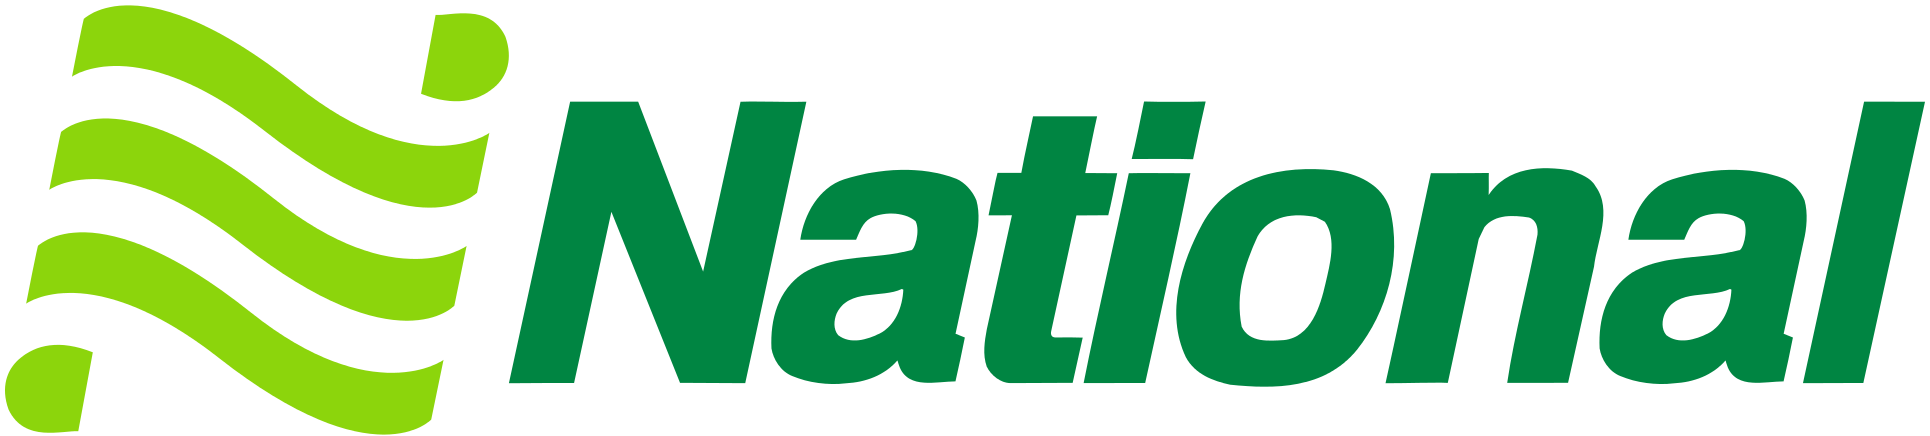 National employee car rental logo